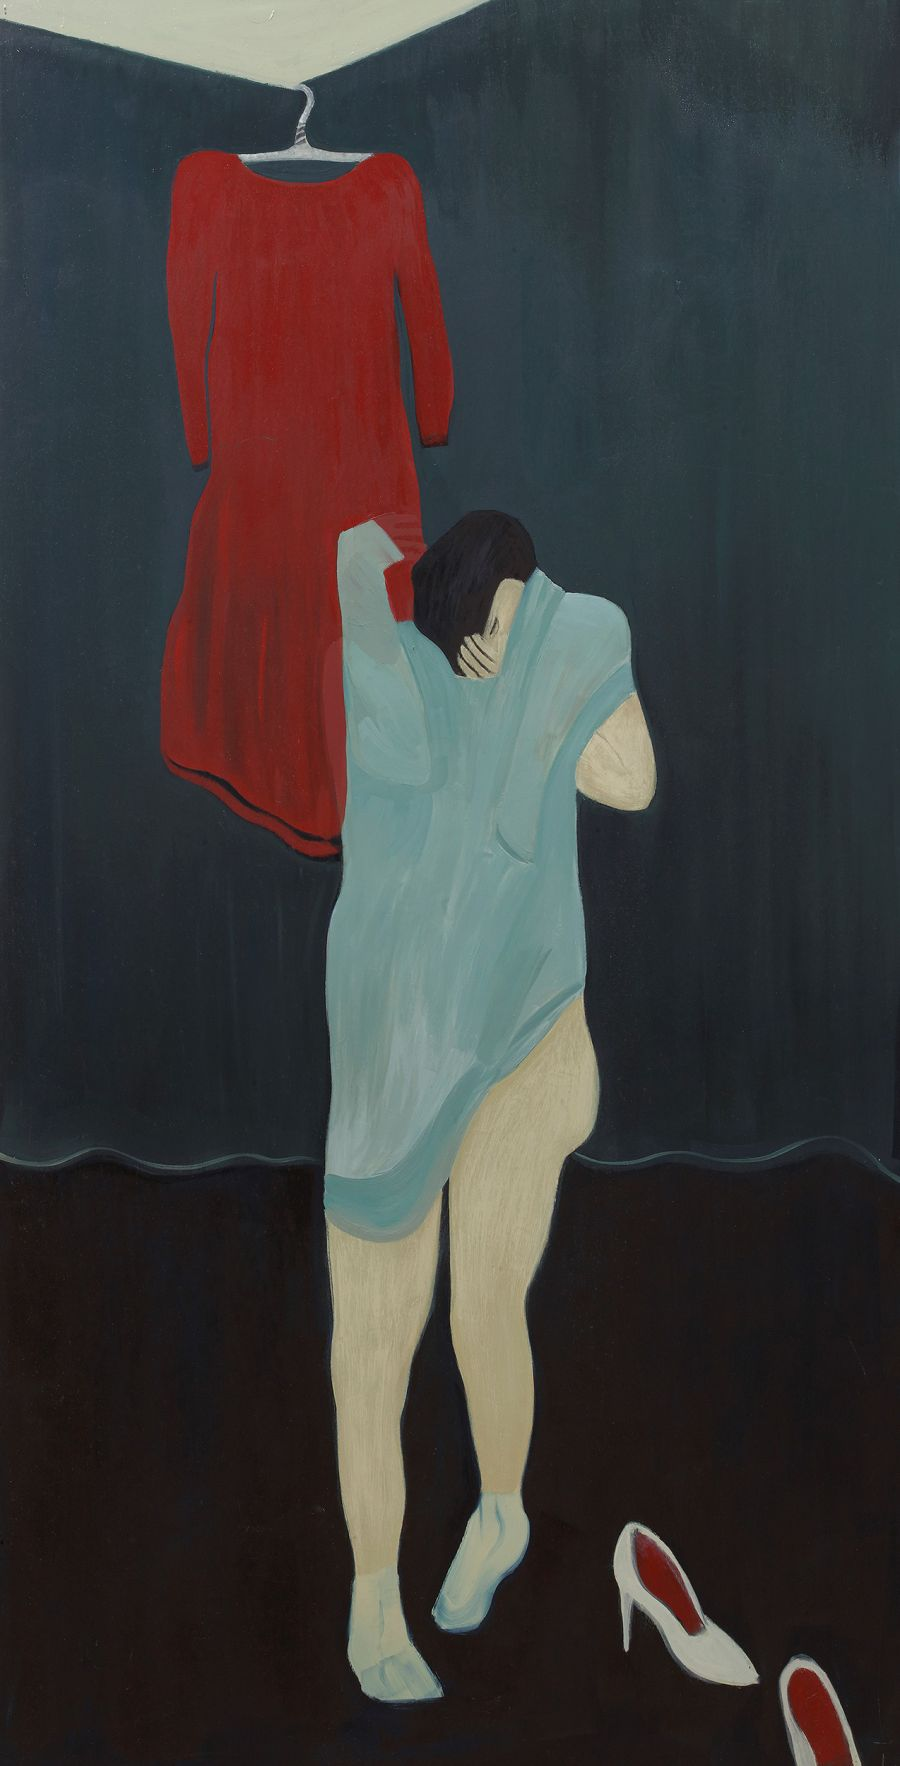 figure taking off clothes with white shoes and a red dress hanging behind them.